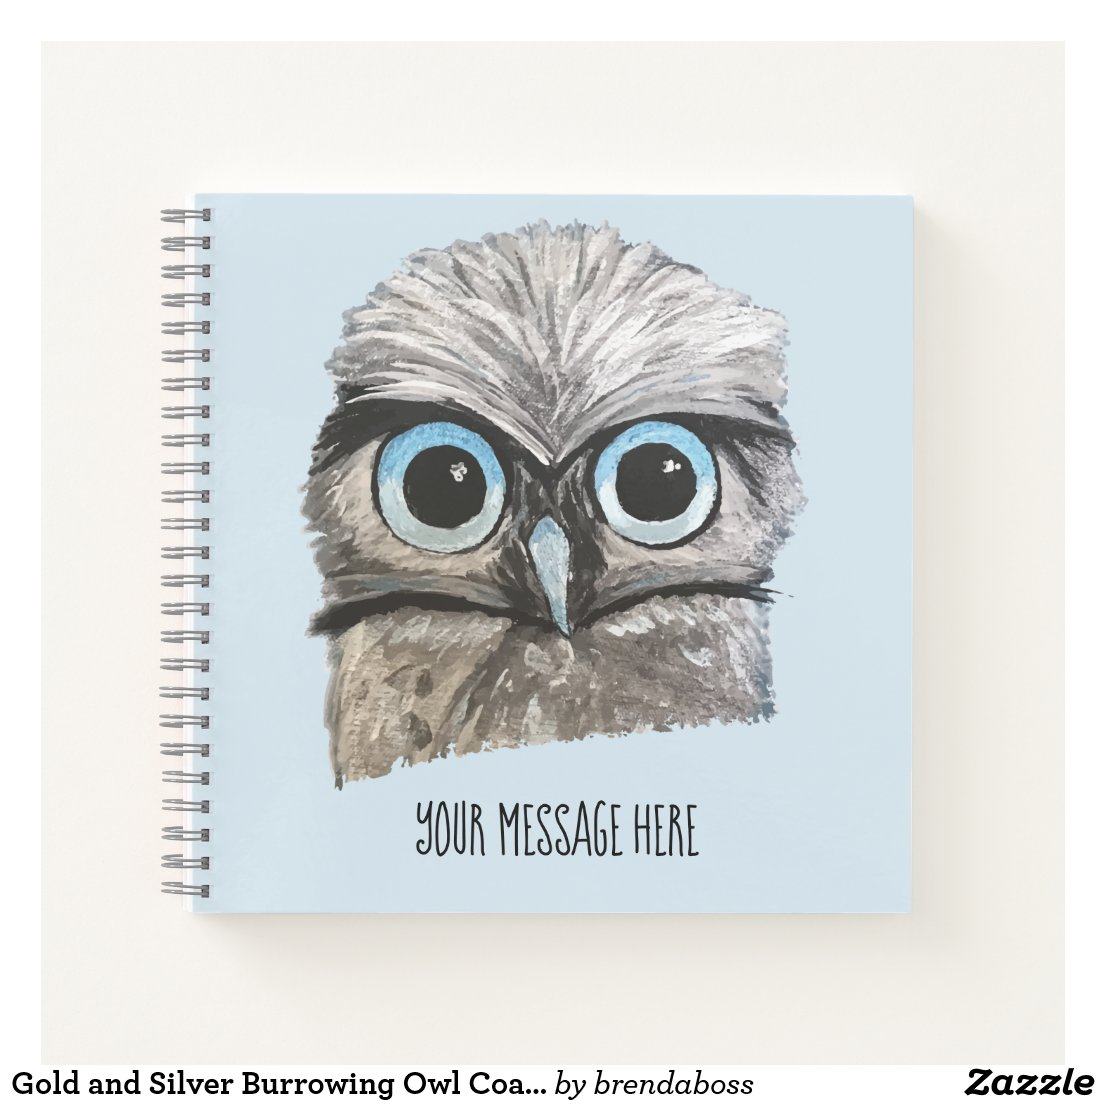 Gold and Silver Burrowing Owl Coastal Art